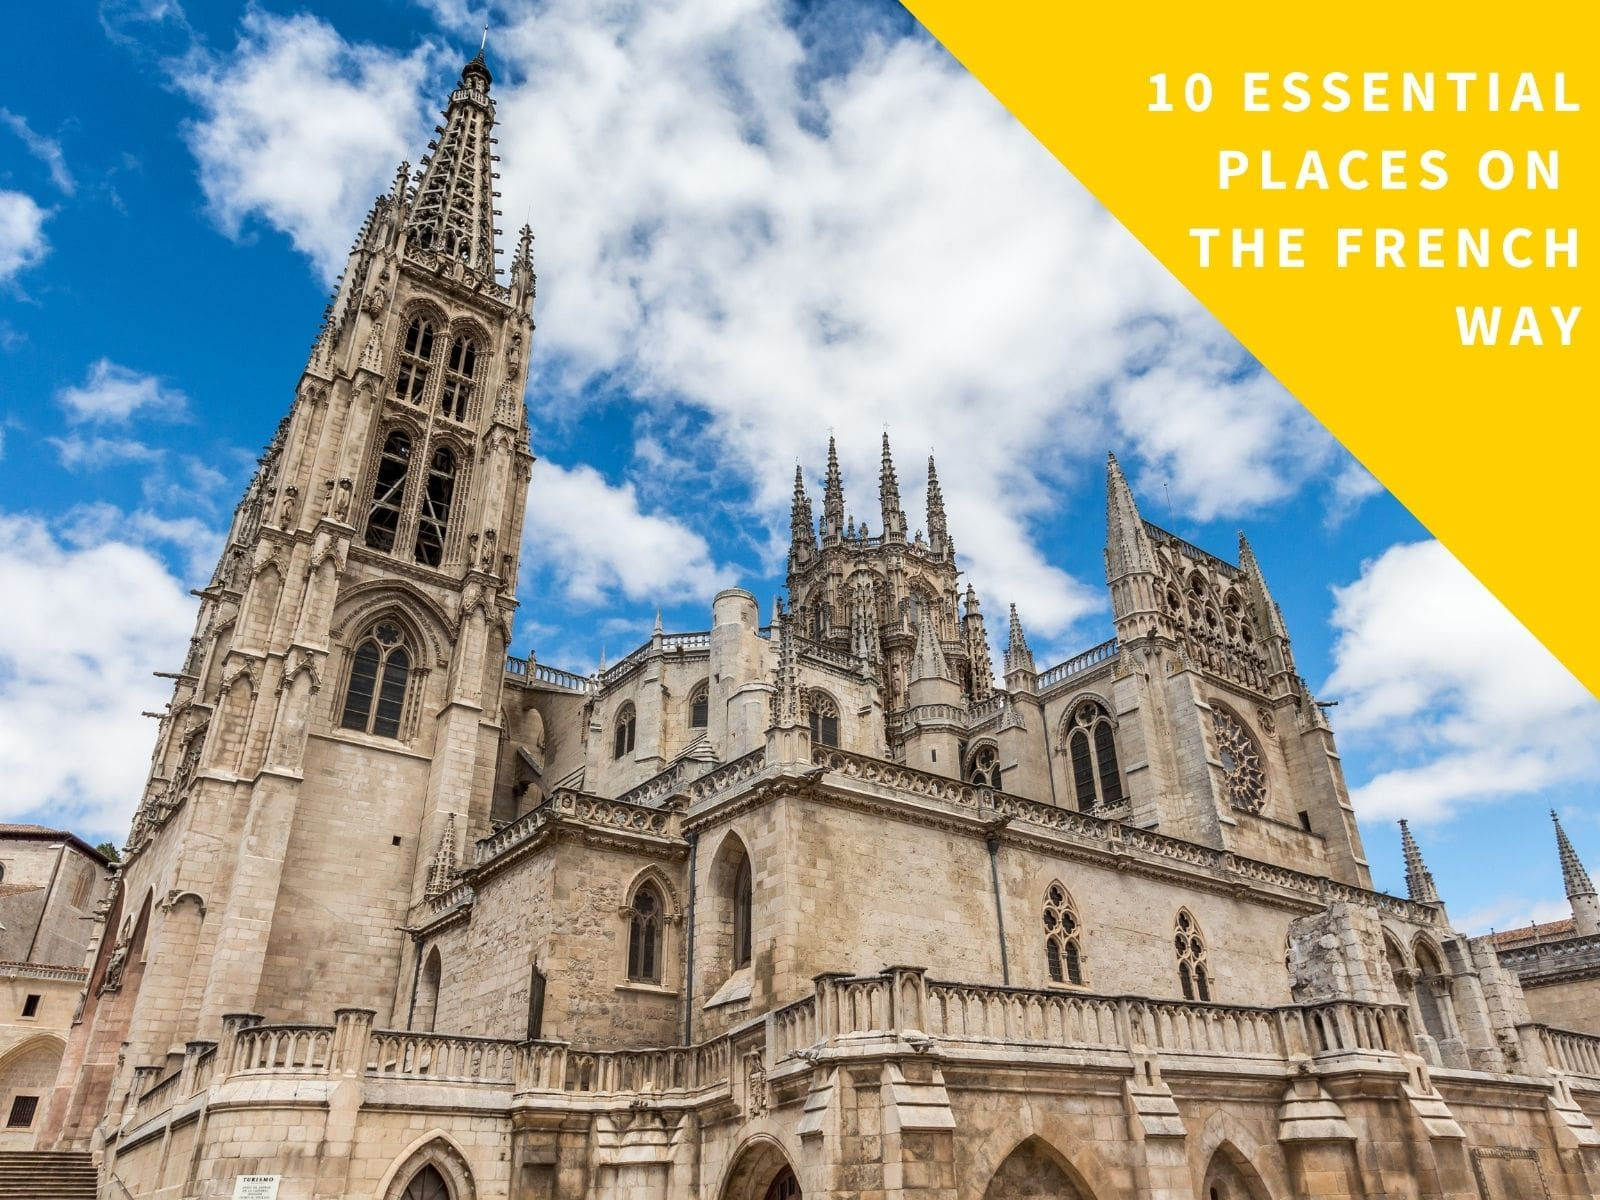 10 Essential places on the French Way